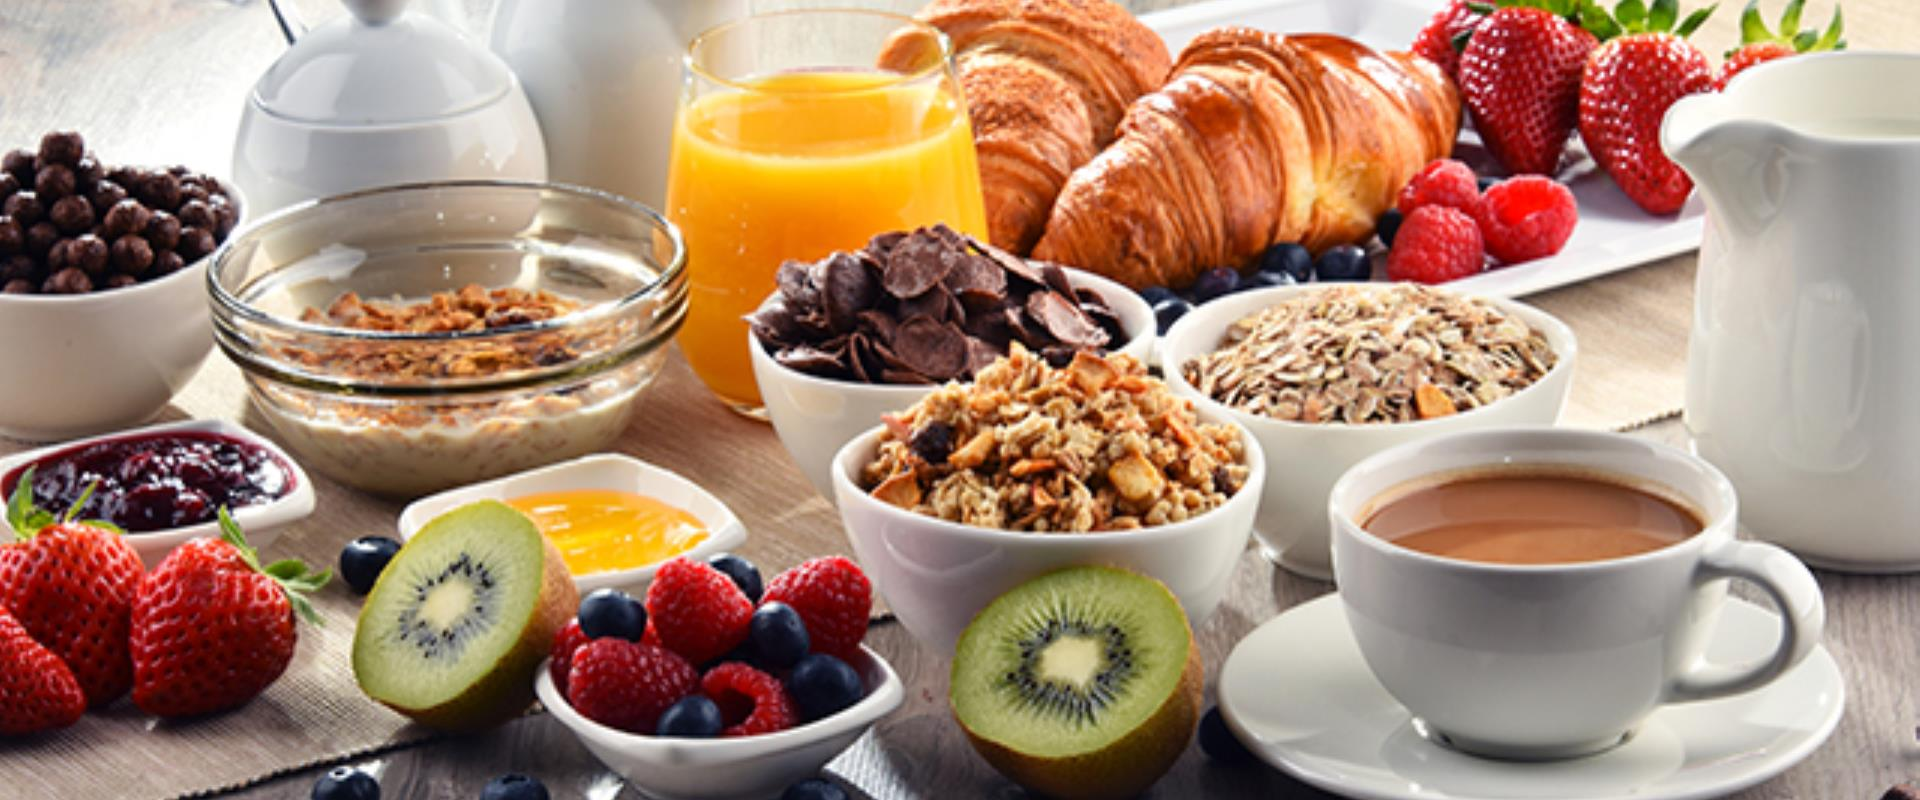 Free breakfast BWR members Gold, Platinum, Diamond and Diamond Select-BW Plus Hotel Monza e Brianza Palace